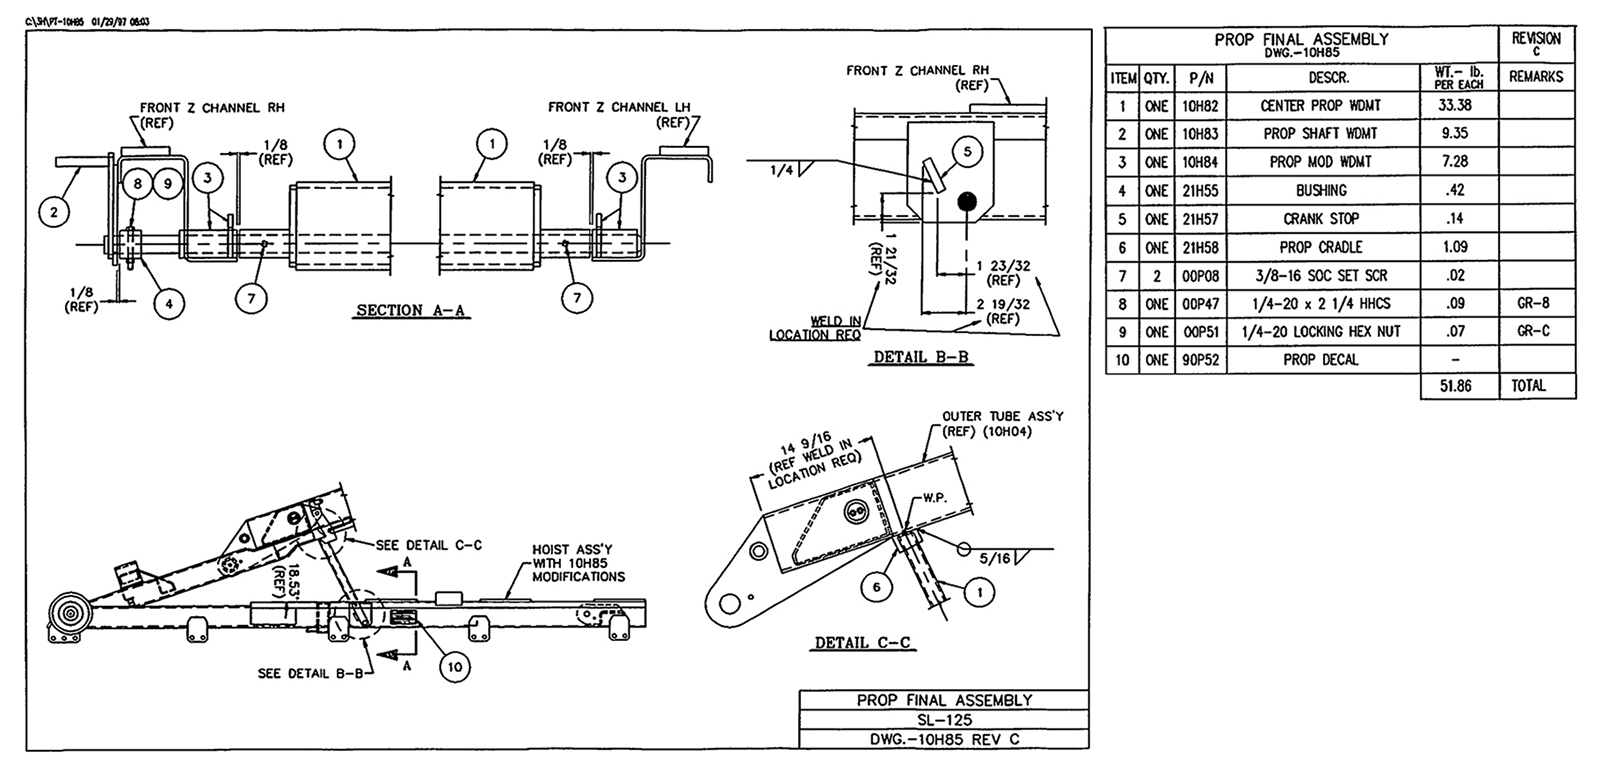 SL-125 Prop Final Assembly Diagram